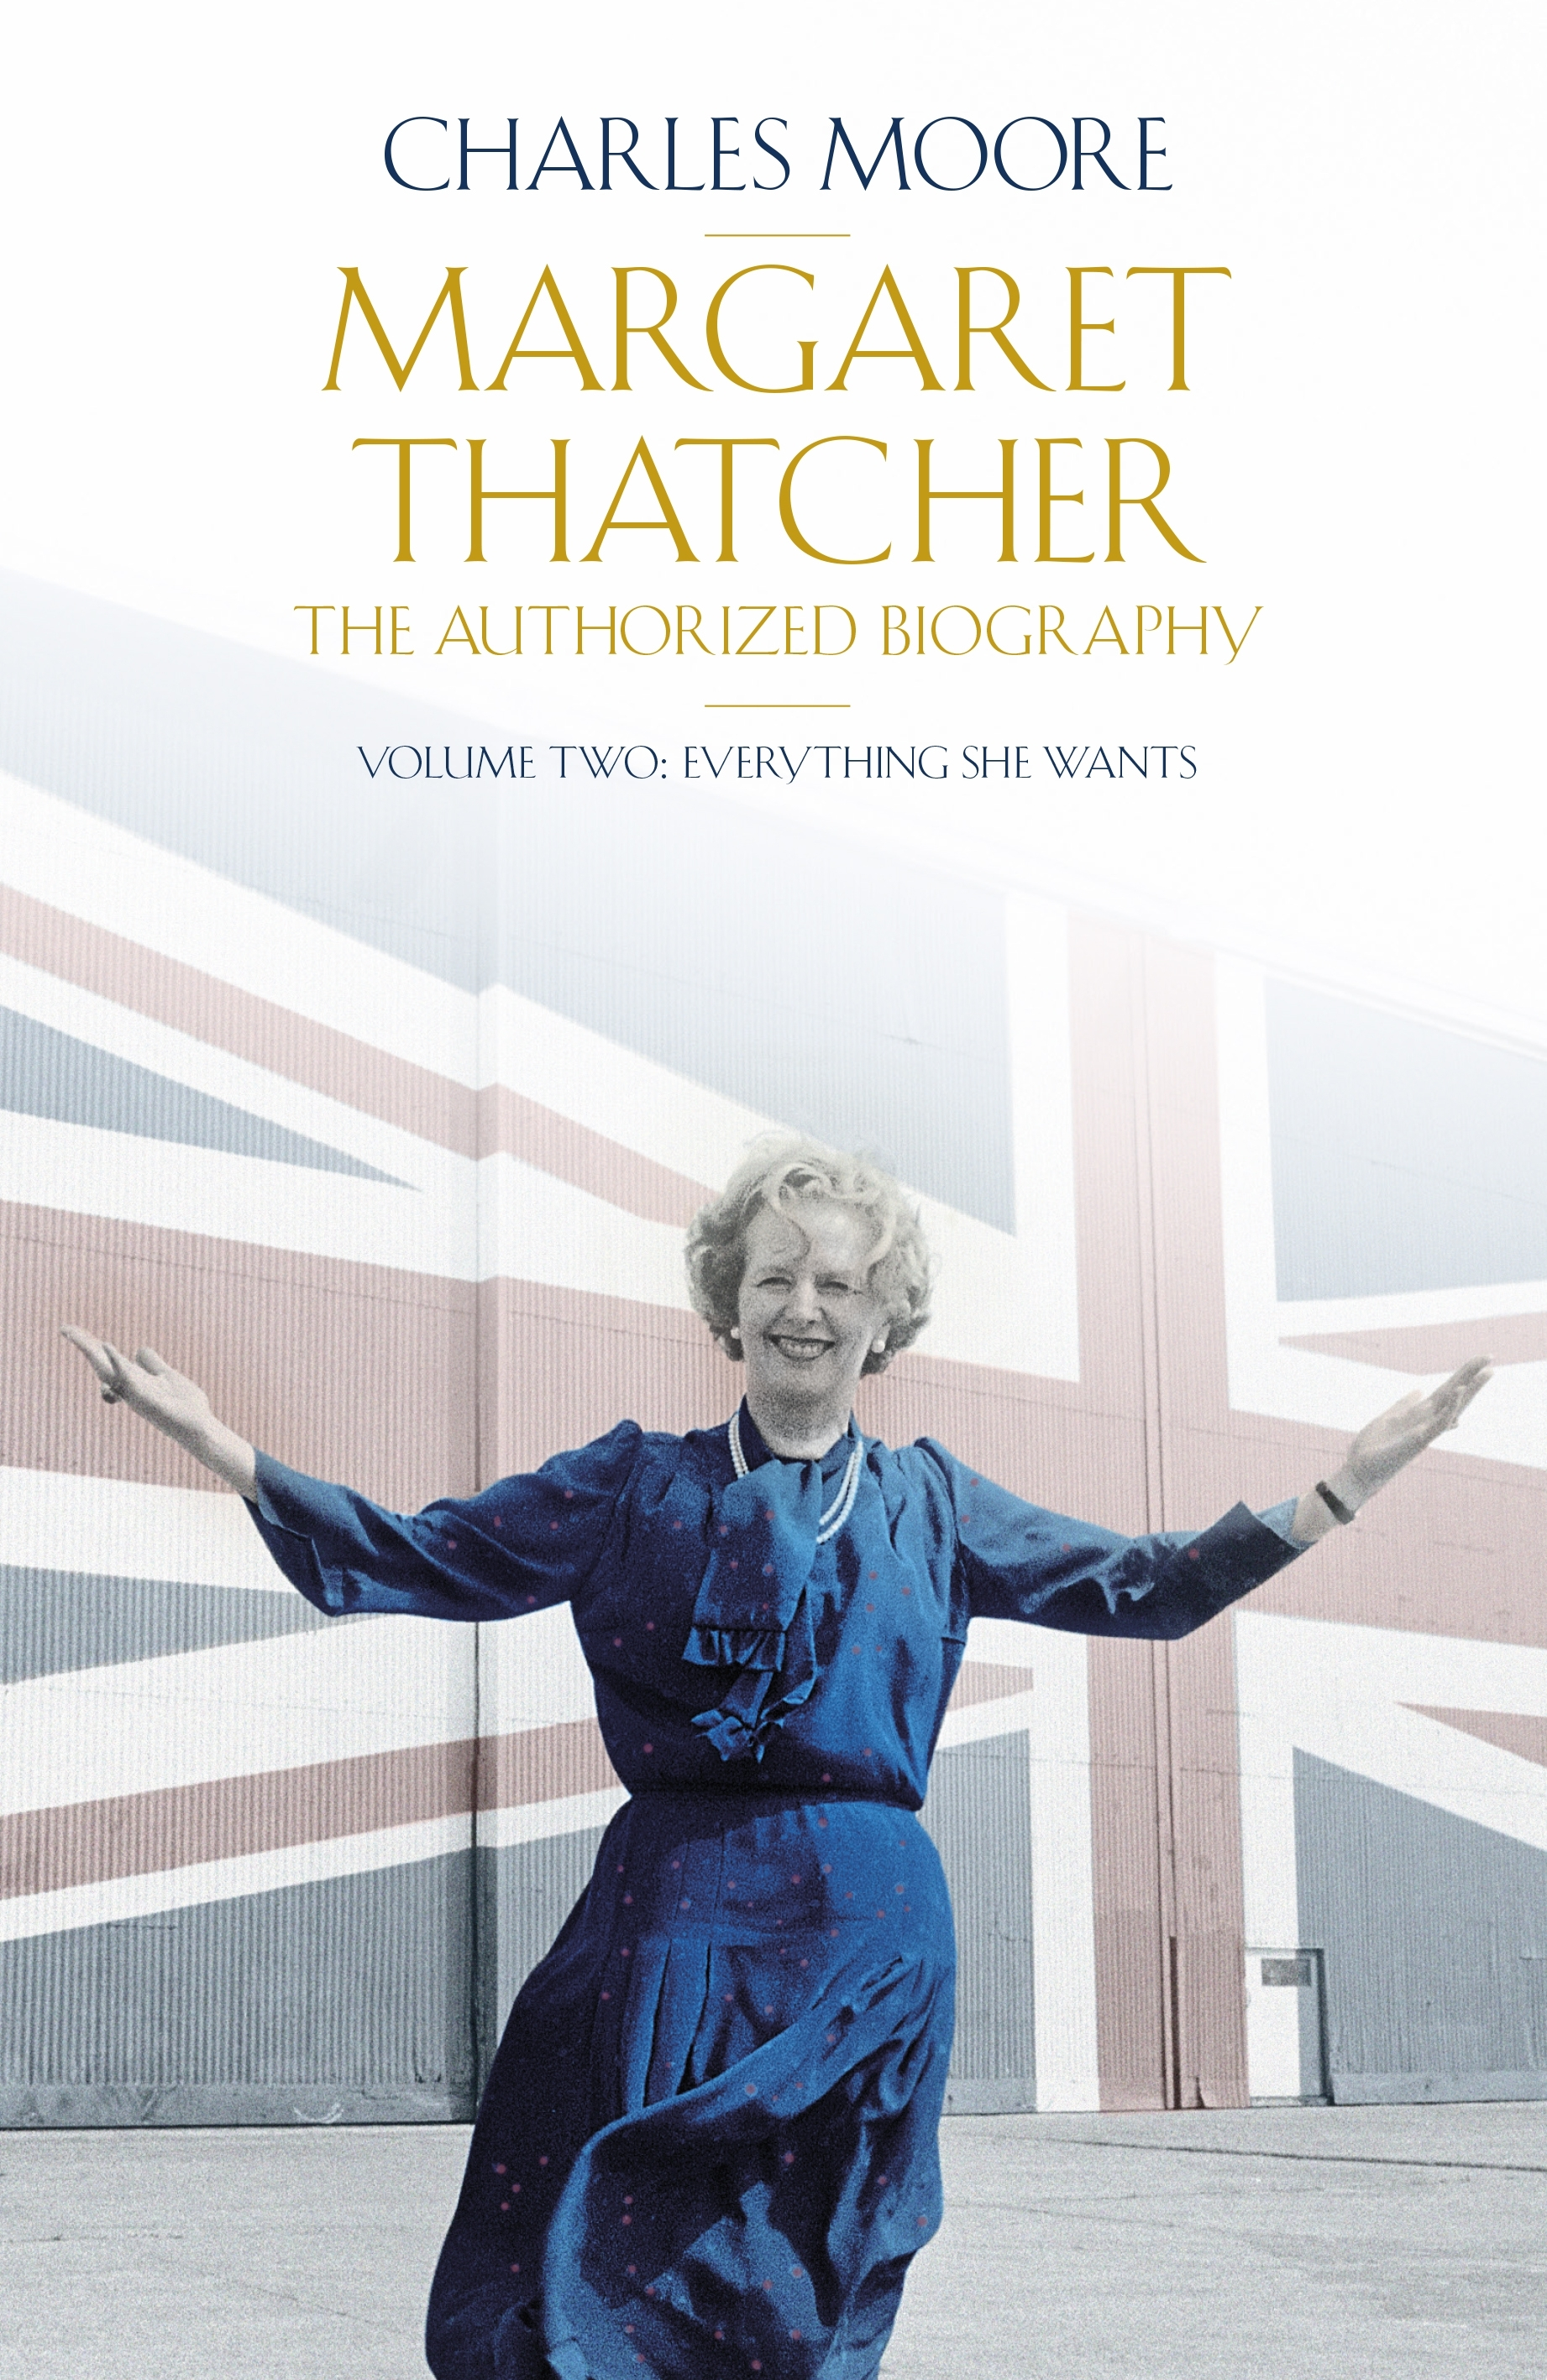 Margaret Thatcher The Authorized Biography, Volume Two  Everything She Wants